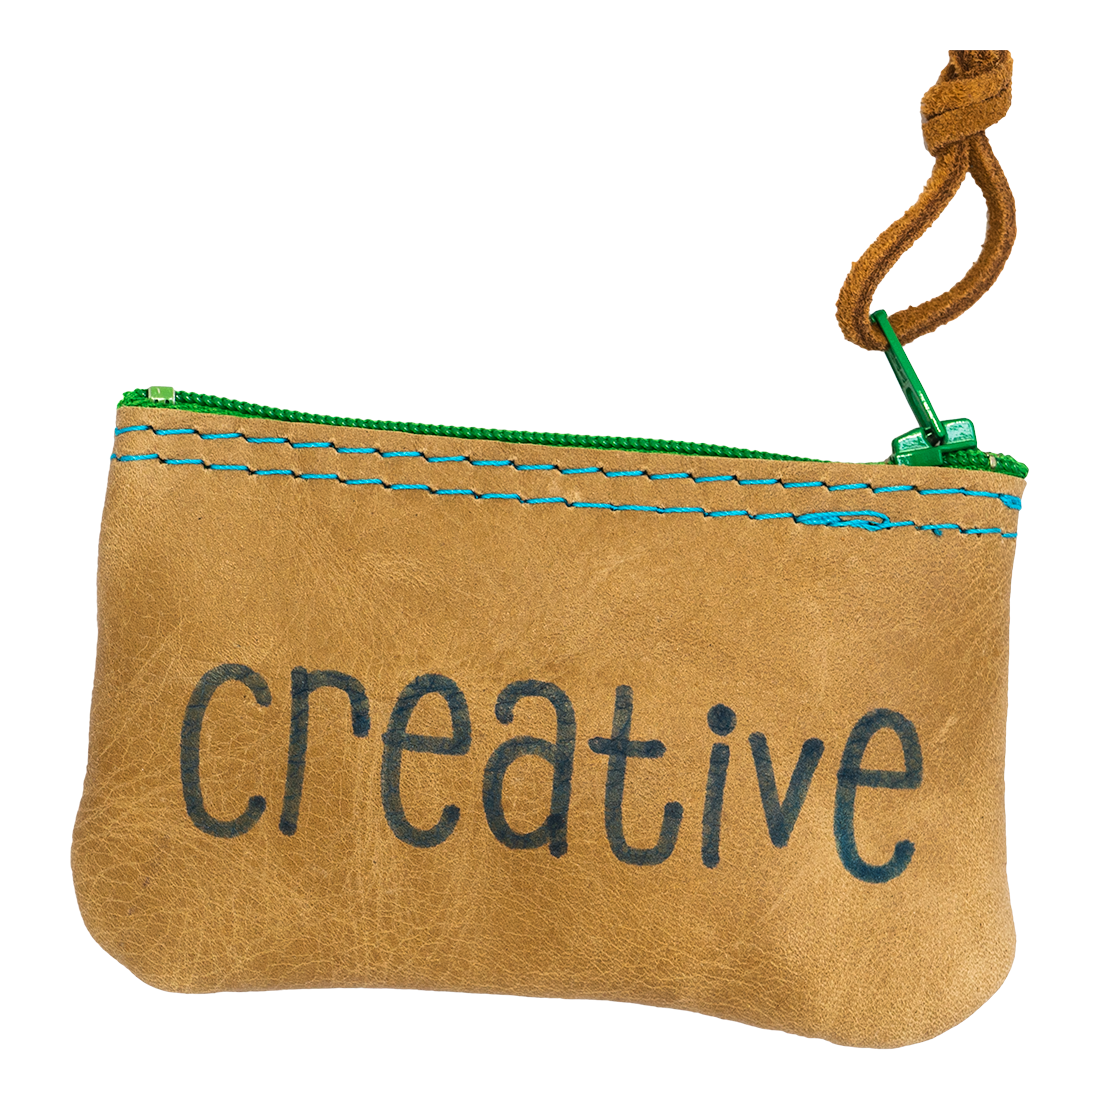 Creative Leather Zipper Pouch